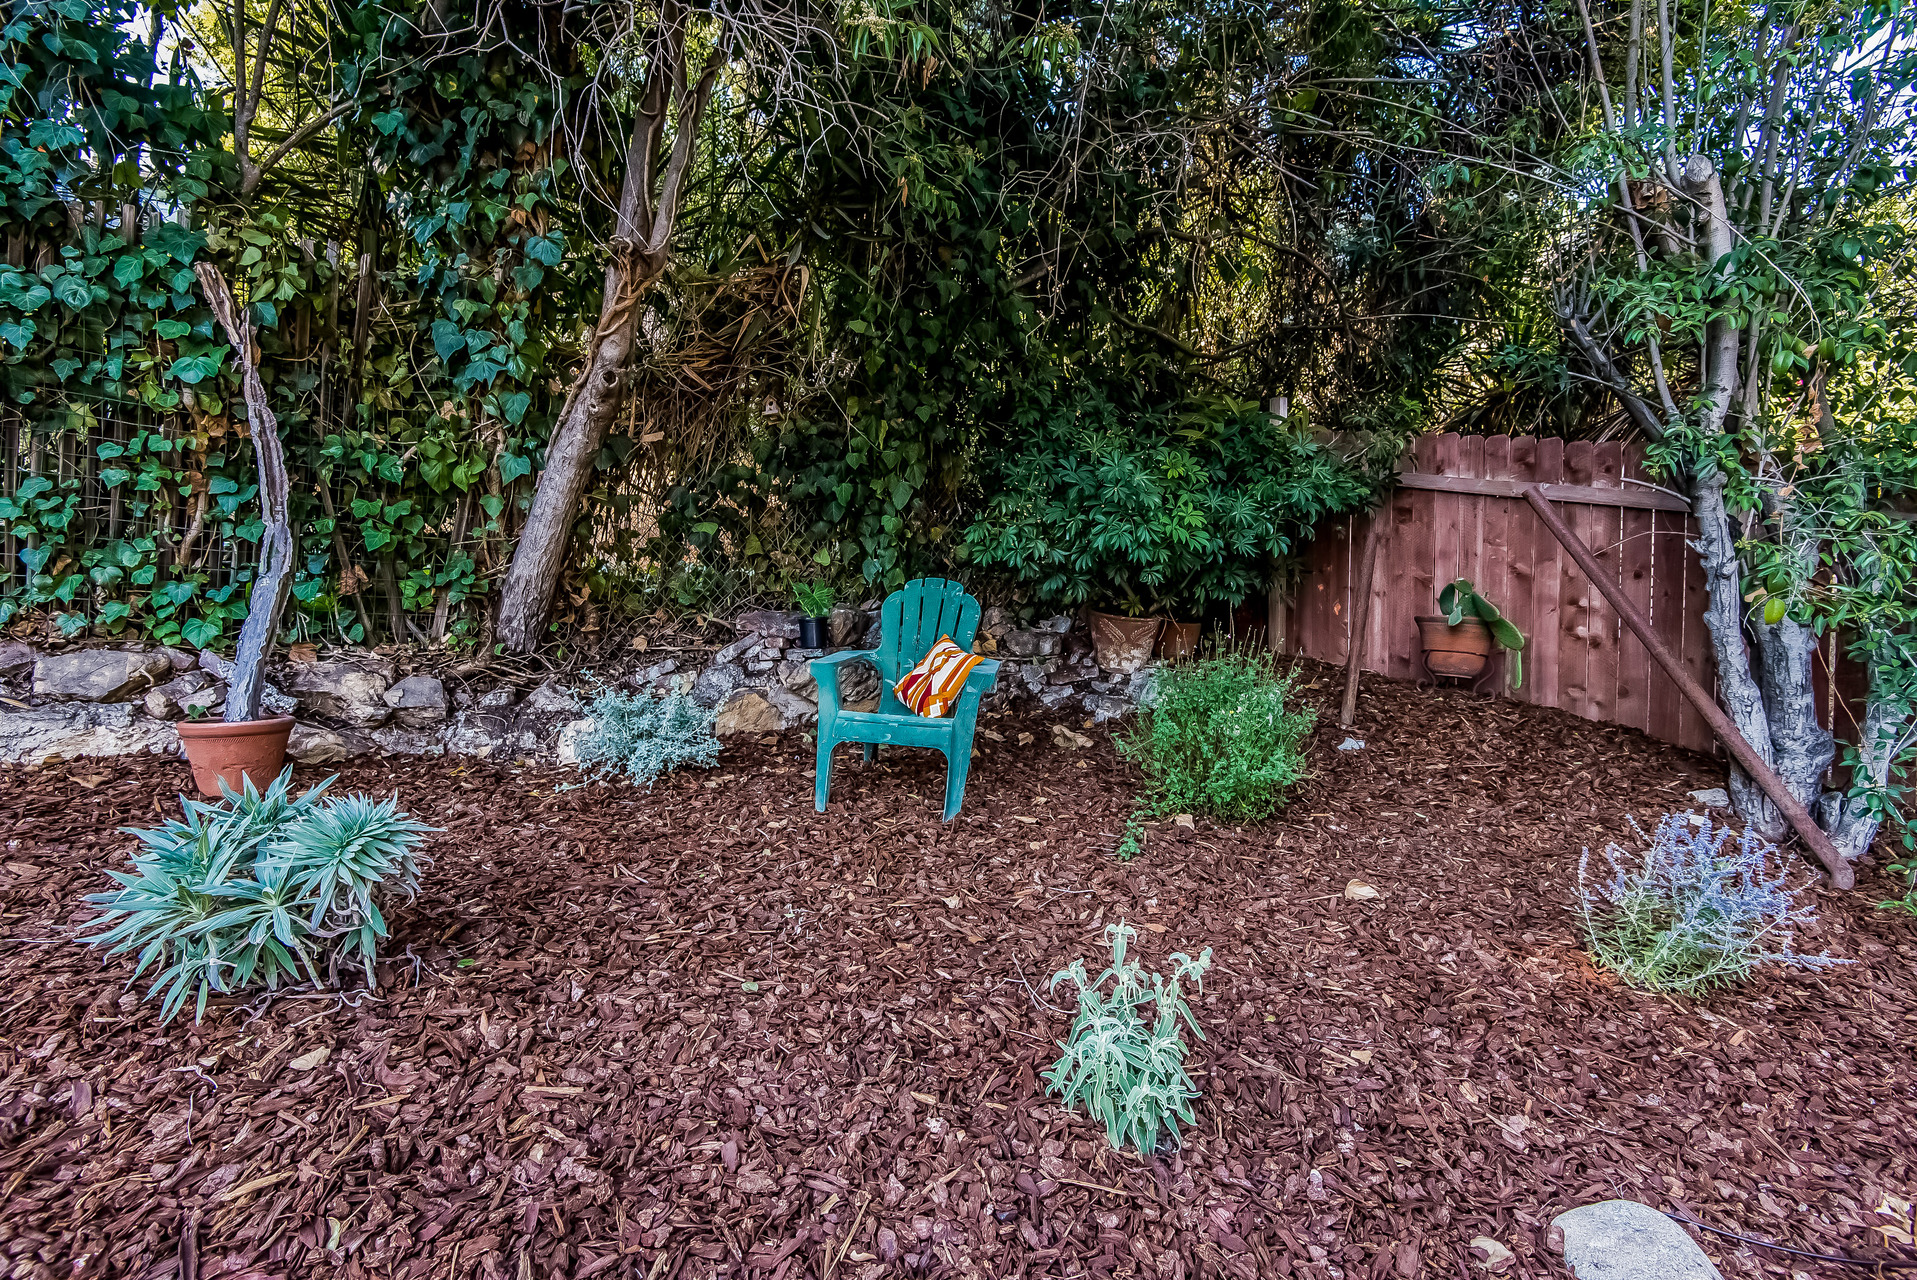 034-Upper_garden_in_backyard-2907683-medium.jpg